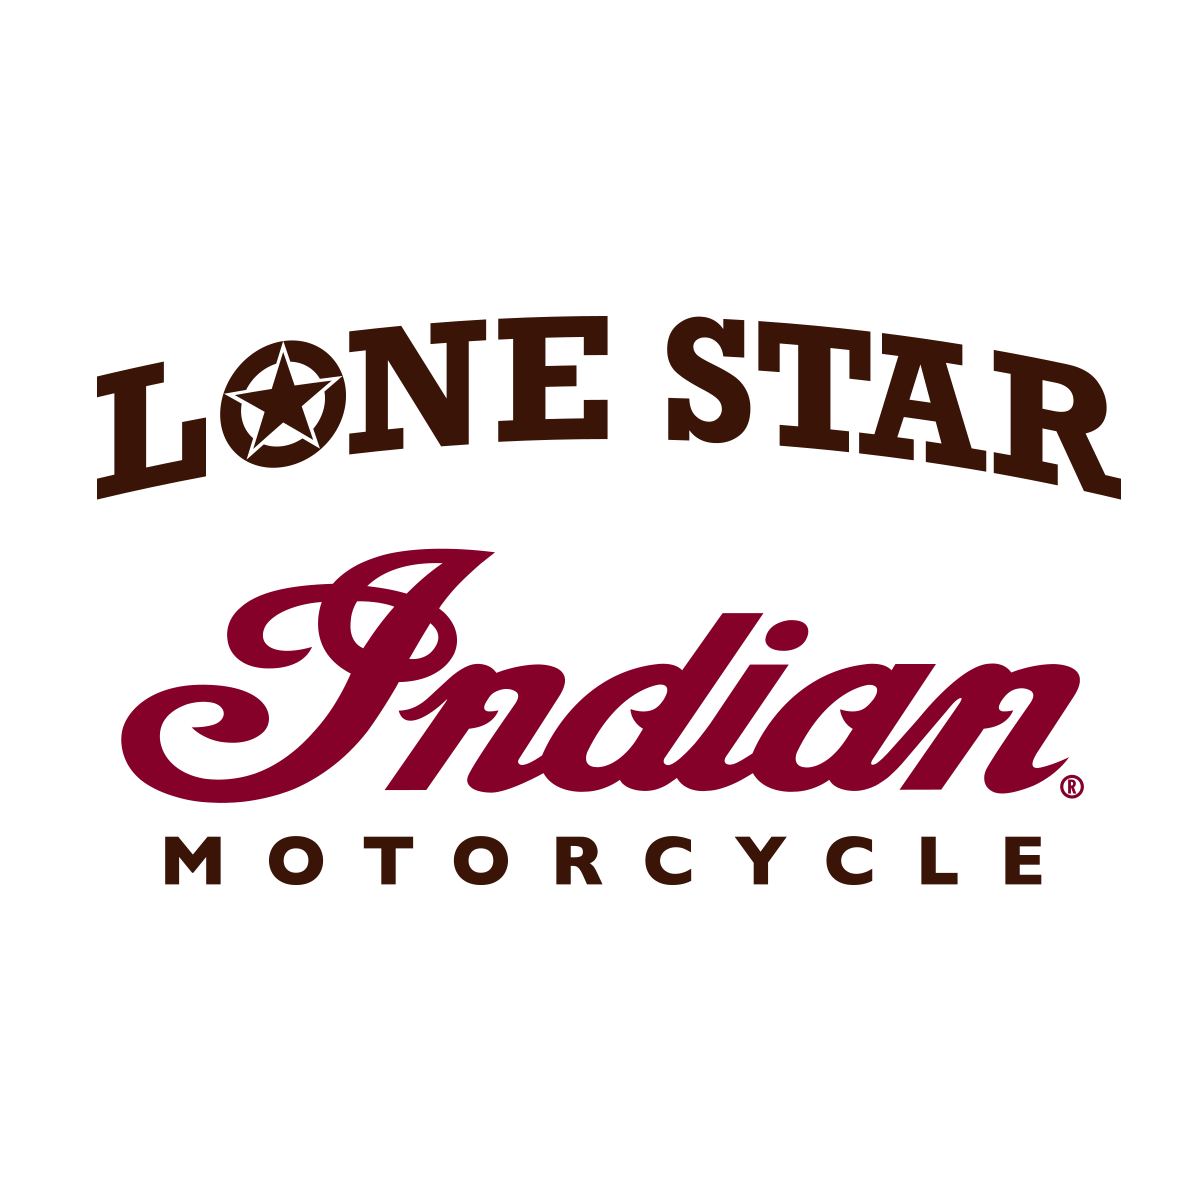 hindu single men in lone star The lone star republic, also referred to as the lone star, lsr, ls, or texas, is a federal republic in south-western central north america, stretching from the sabine river in the east to the pacific ocean in the west.